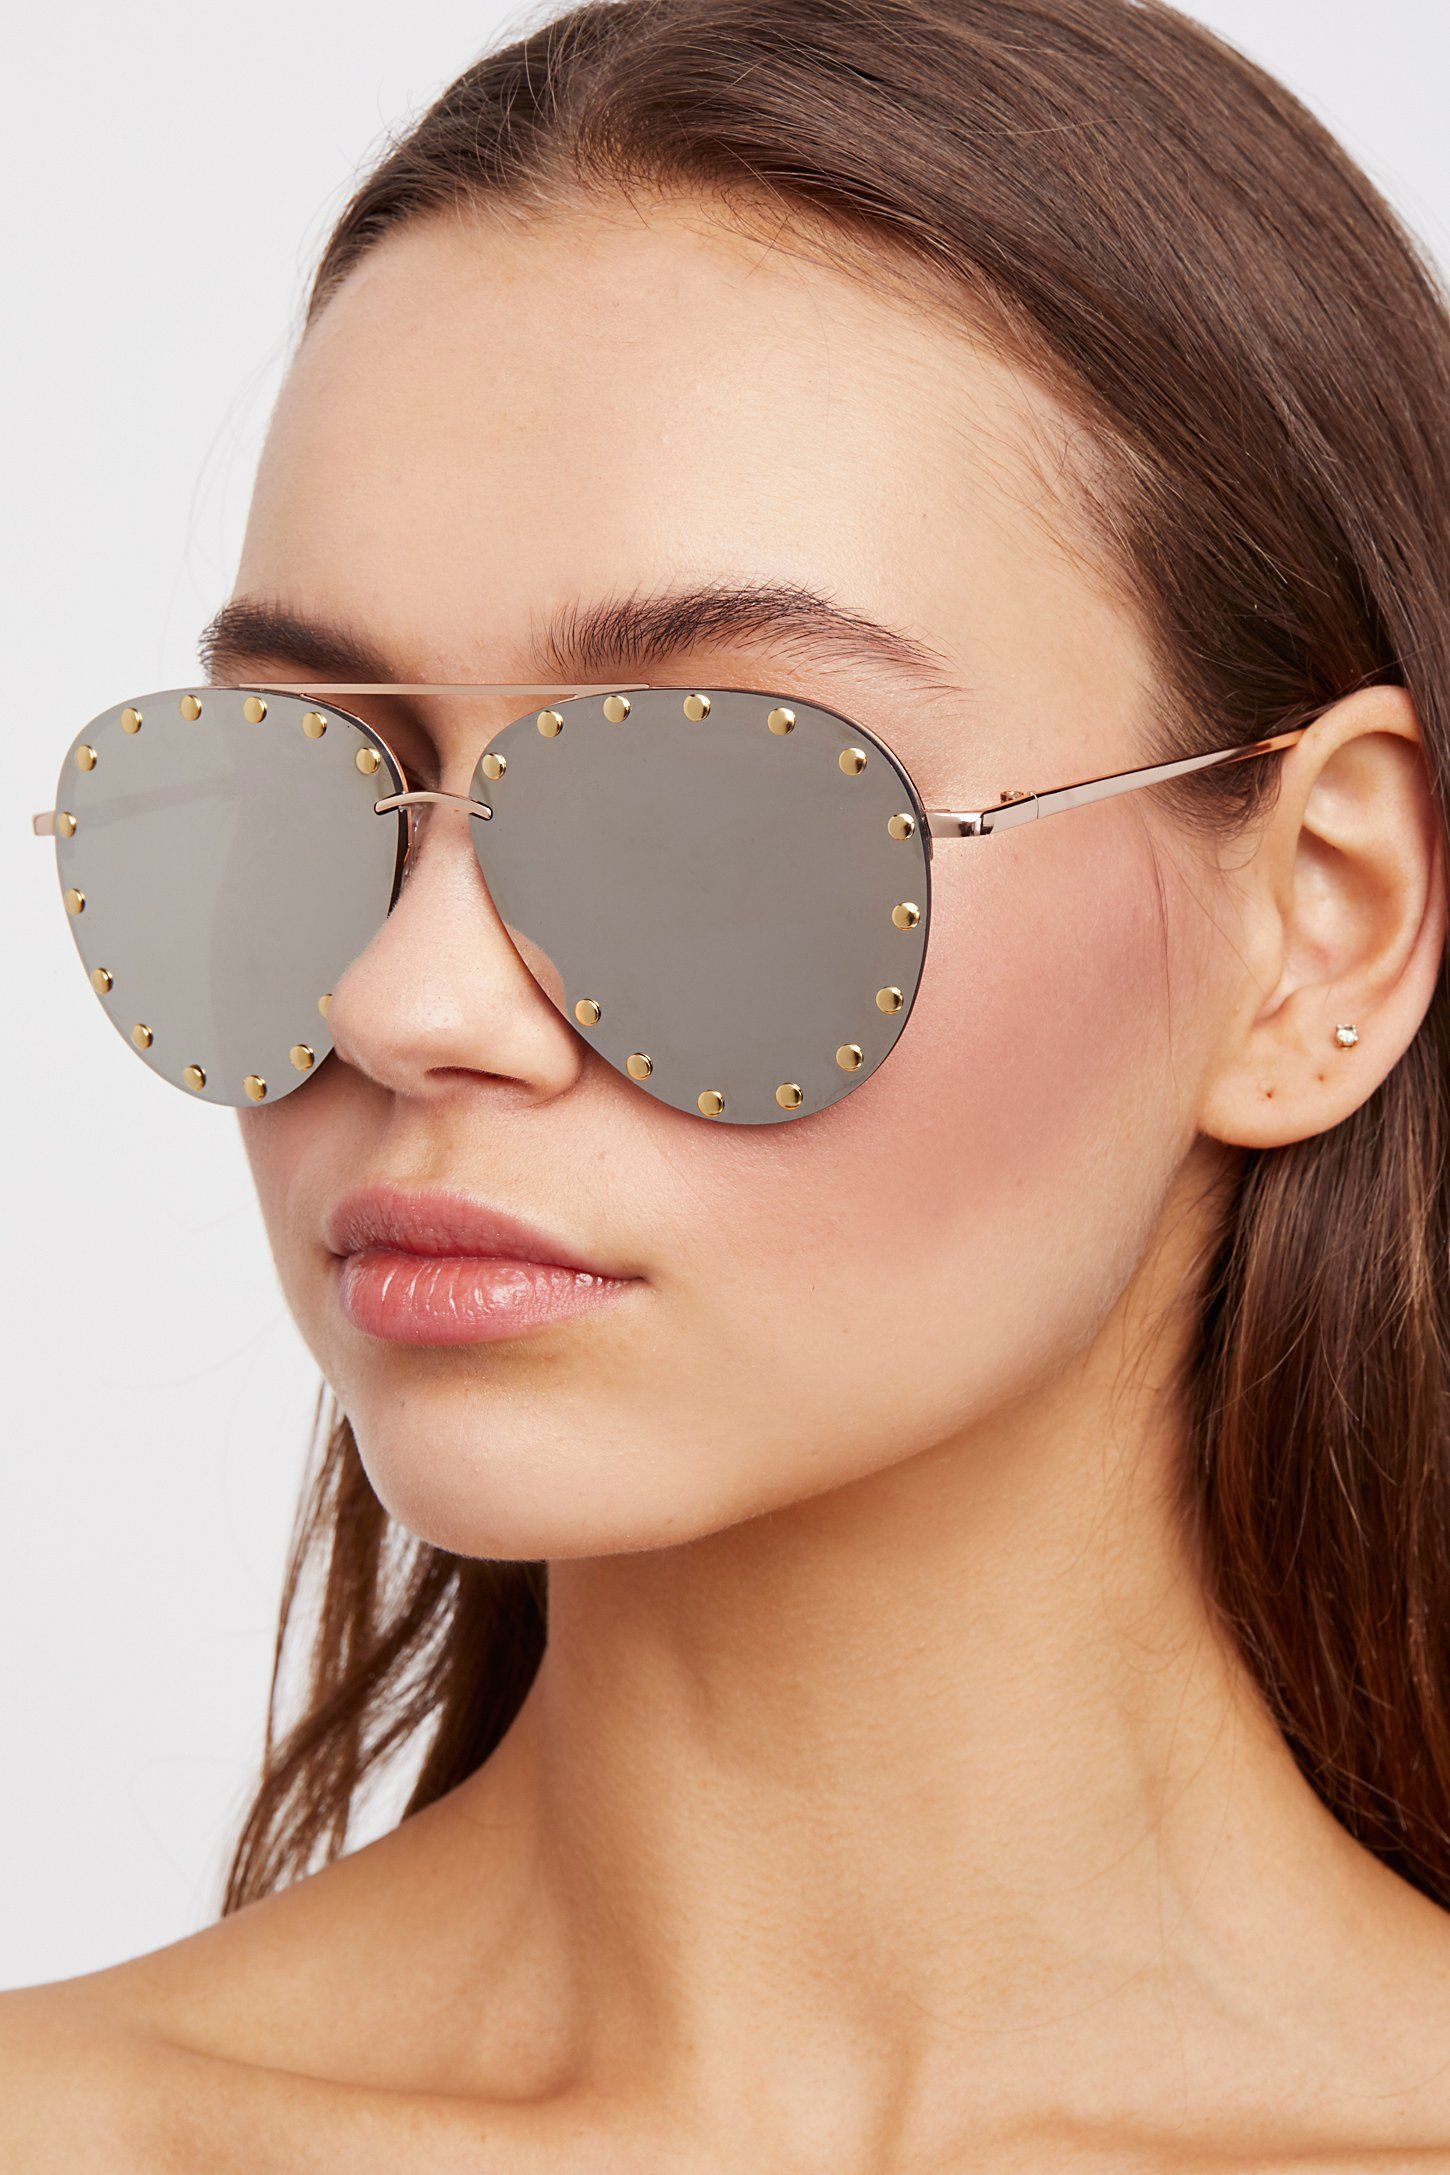 Star Struck Studded Aviator | Free People  In a classic shape, these